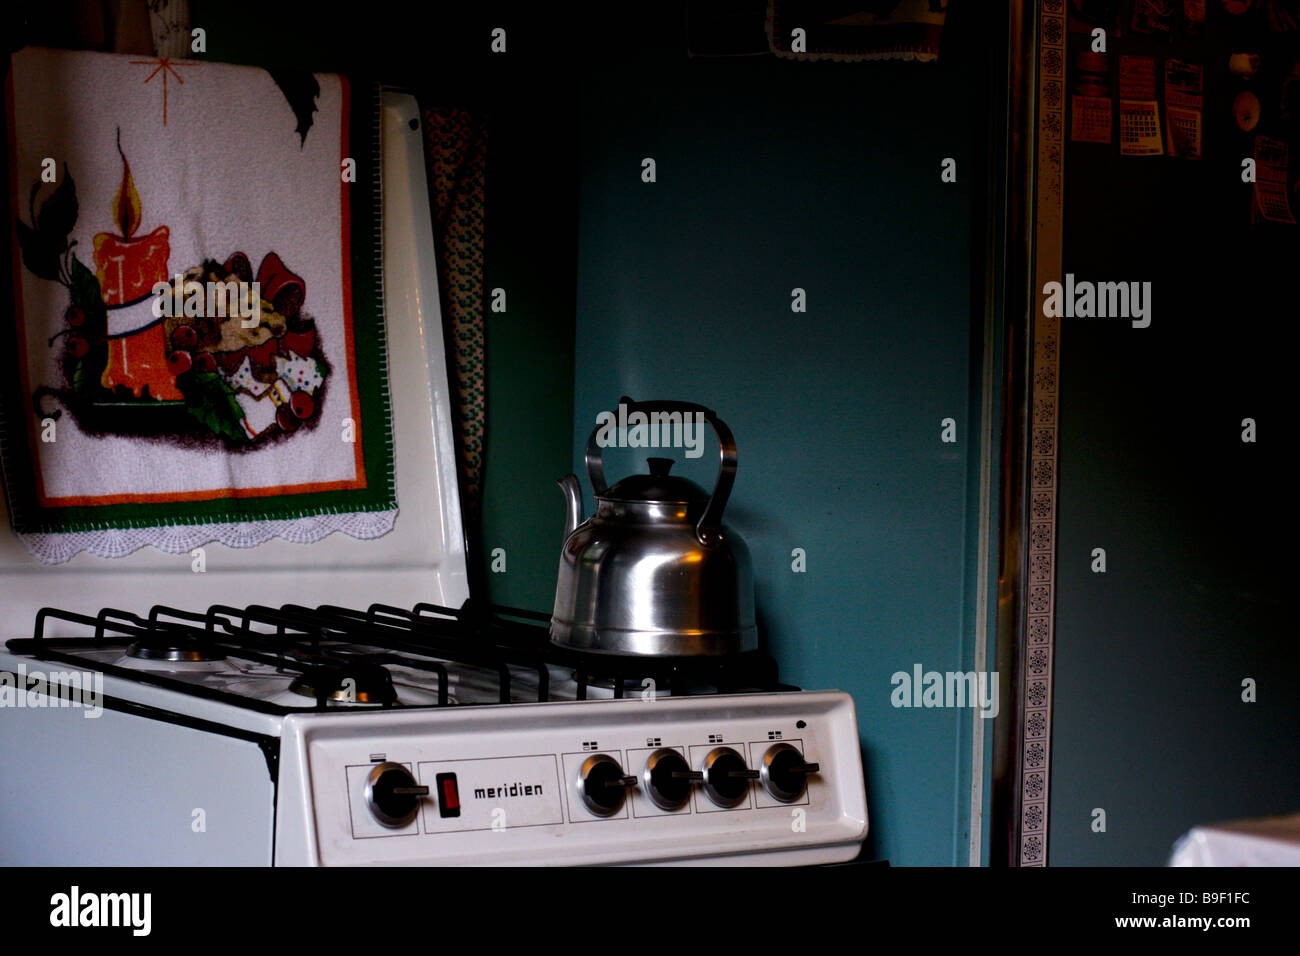 old kitchen with kettle over the stove - Stock Image